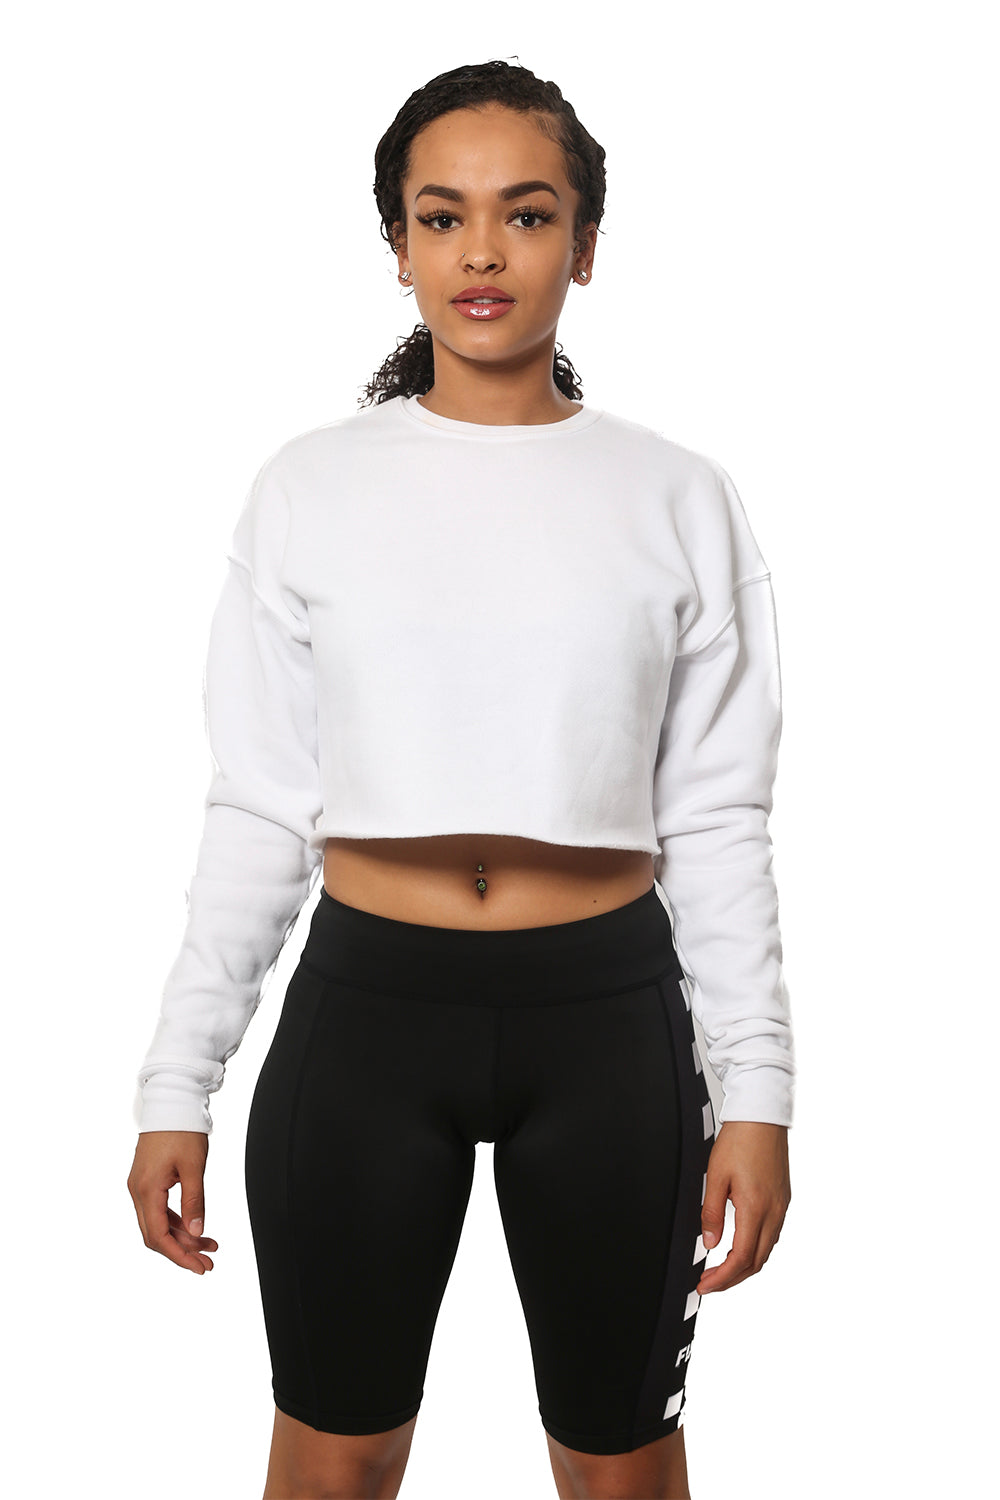 Bringing Fine Back Cropped Fleece